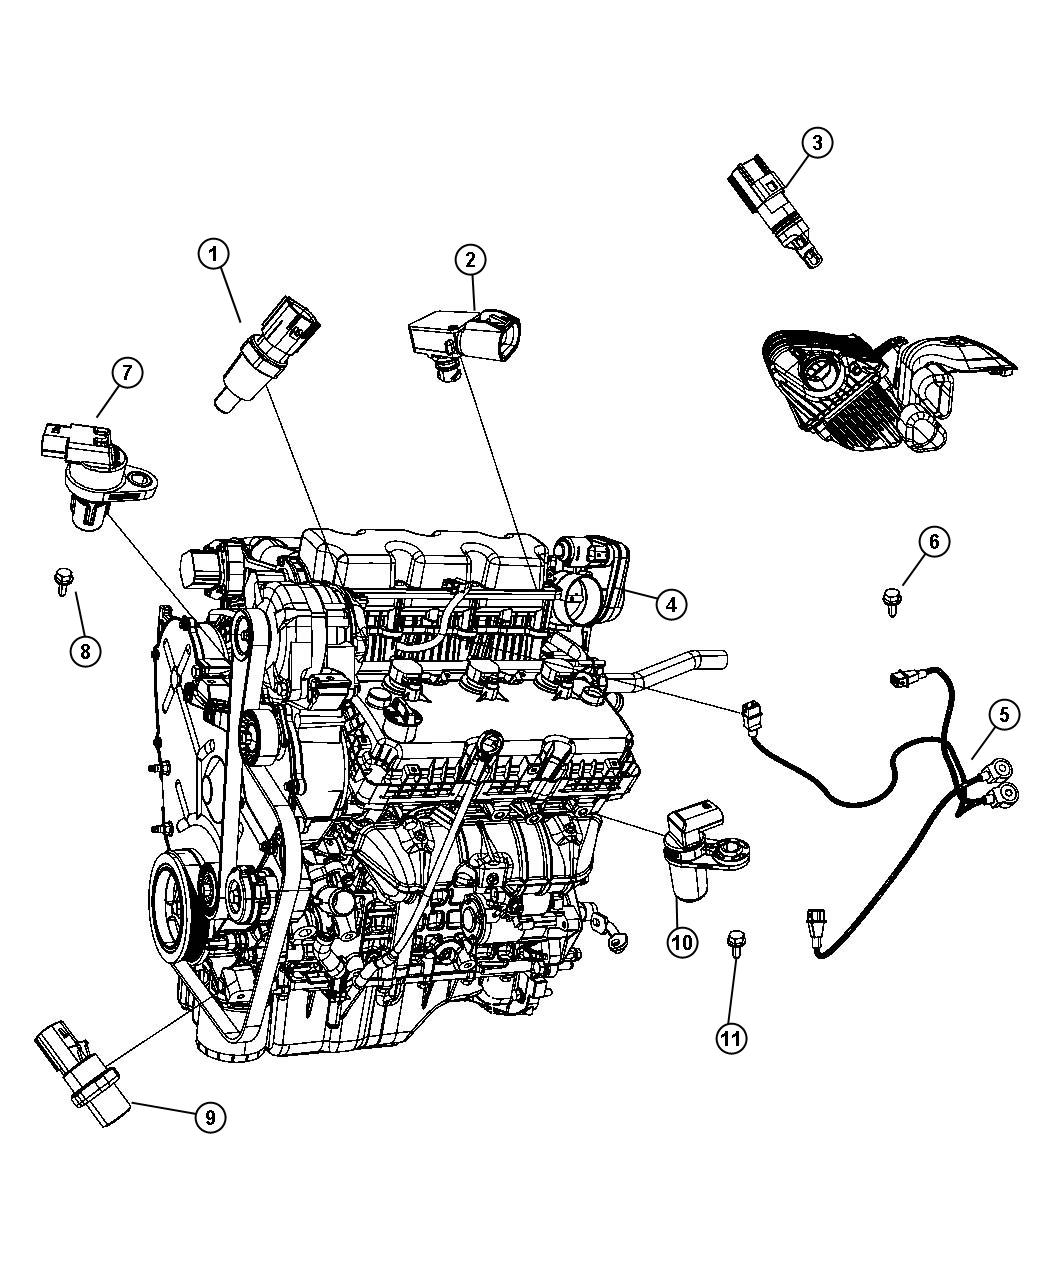 2004 volkswagen jetta air conditioning diagram